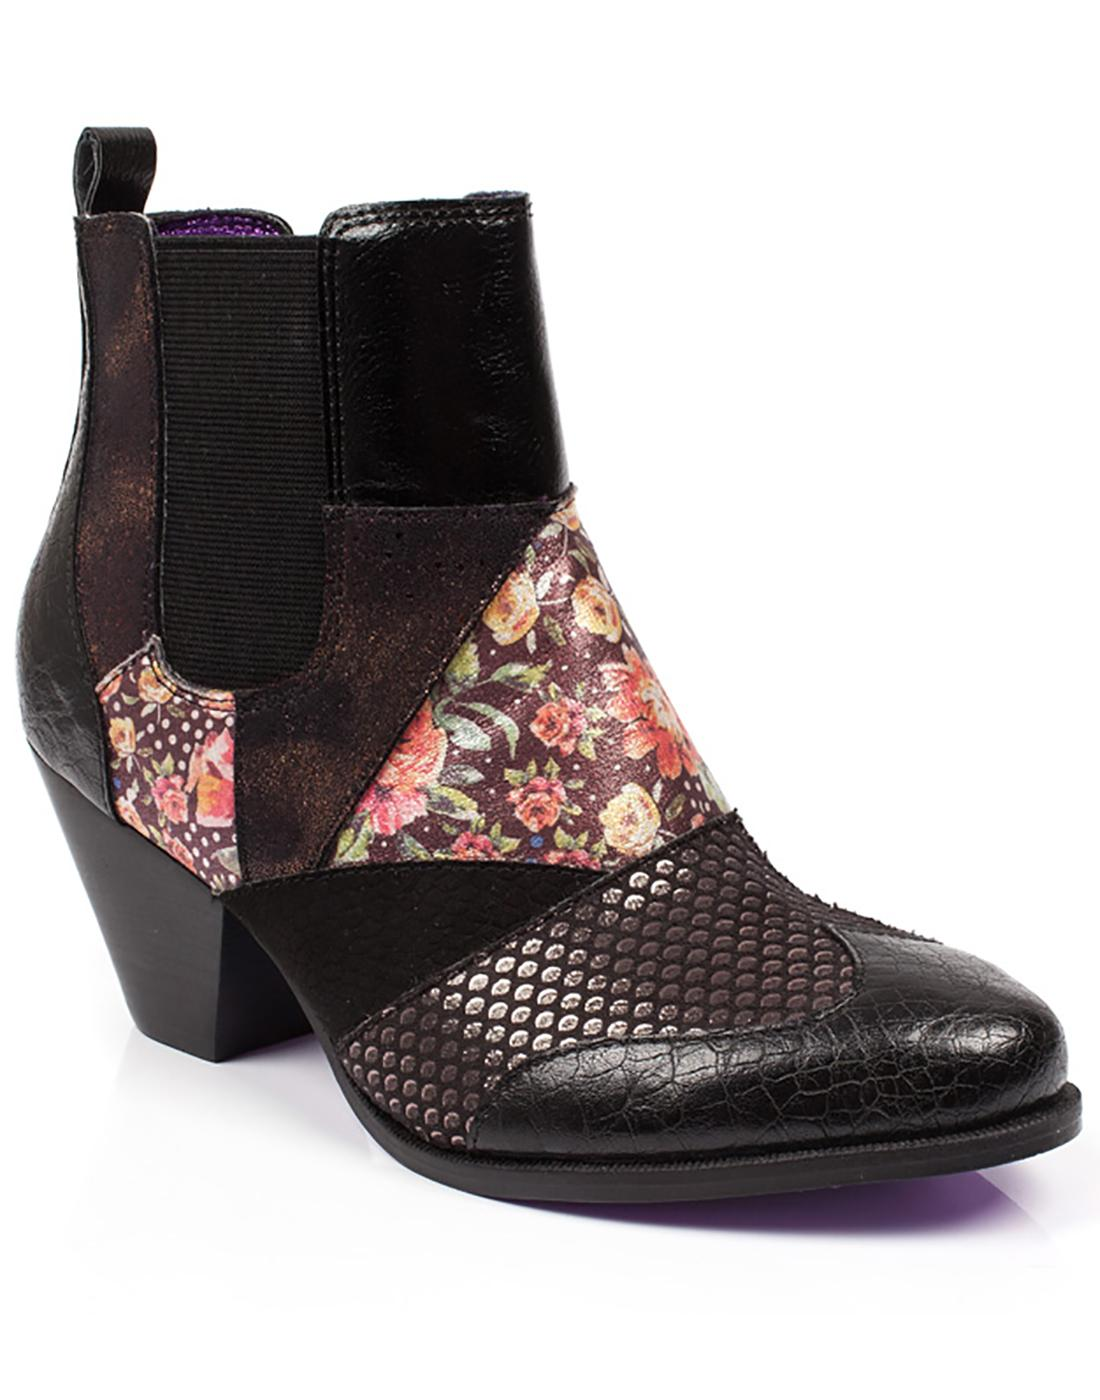 Chelsea Patch POETIC LICENCE Mod Chelsea Boots Blk